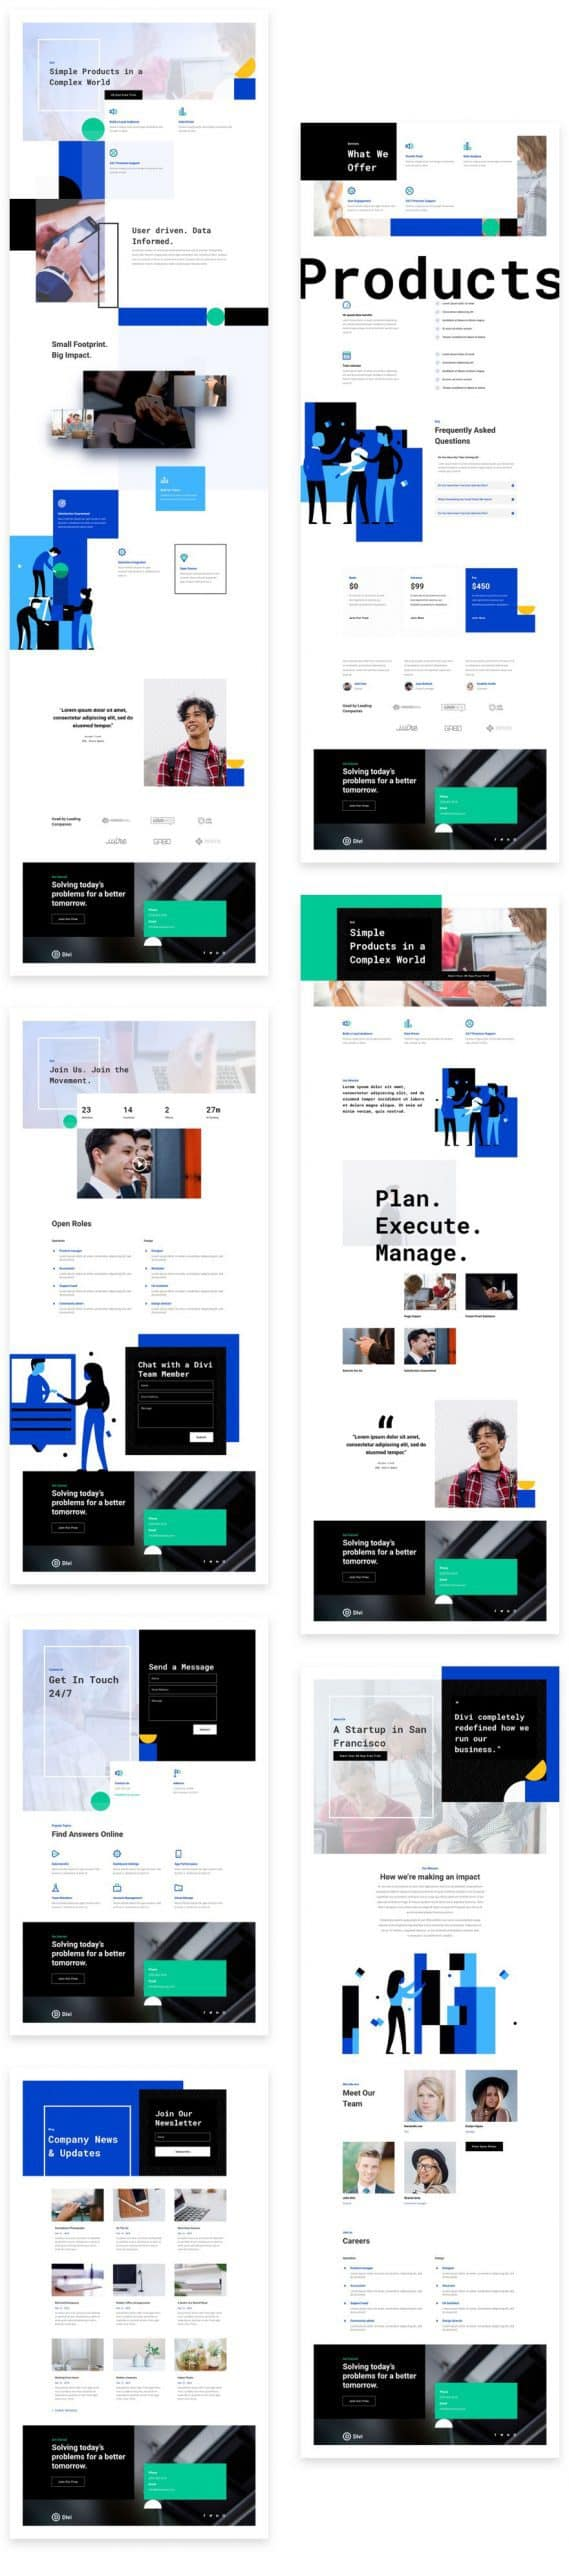 StartUp Divi Layout Pack